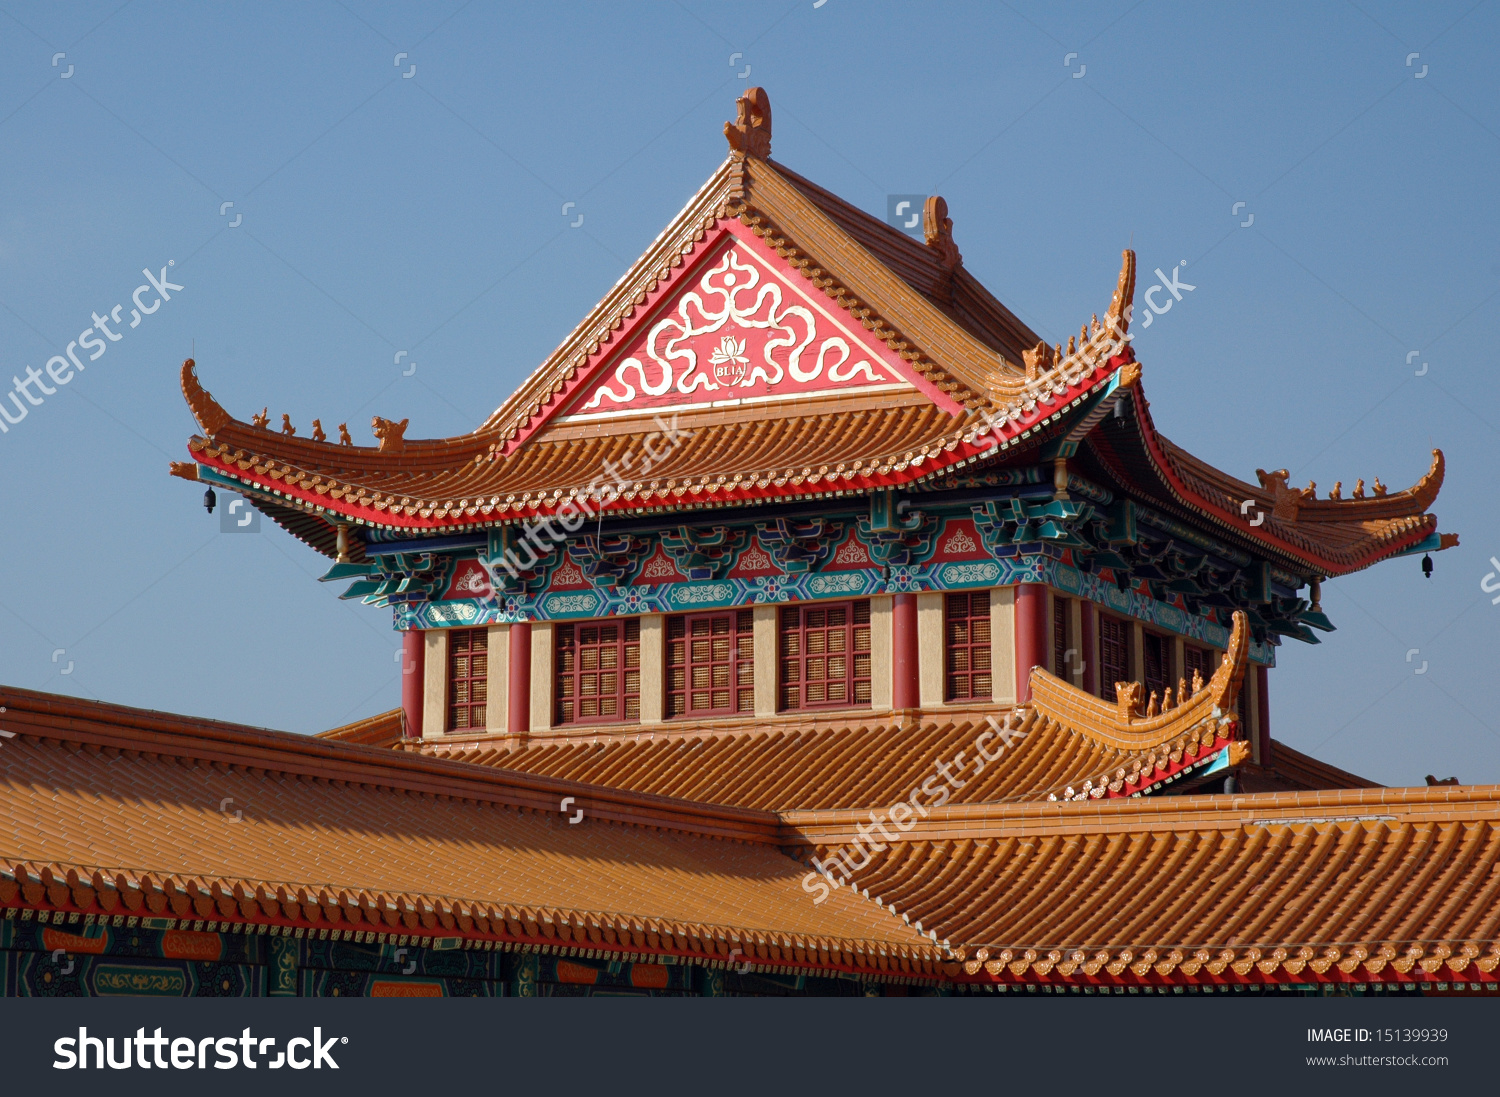 Amazing Asian Architecture Pictures & Backgrounds